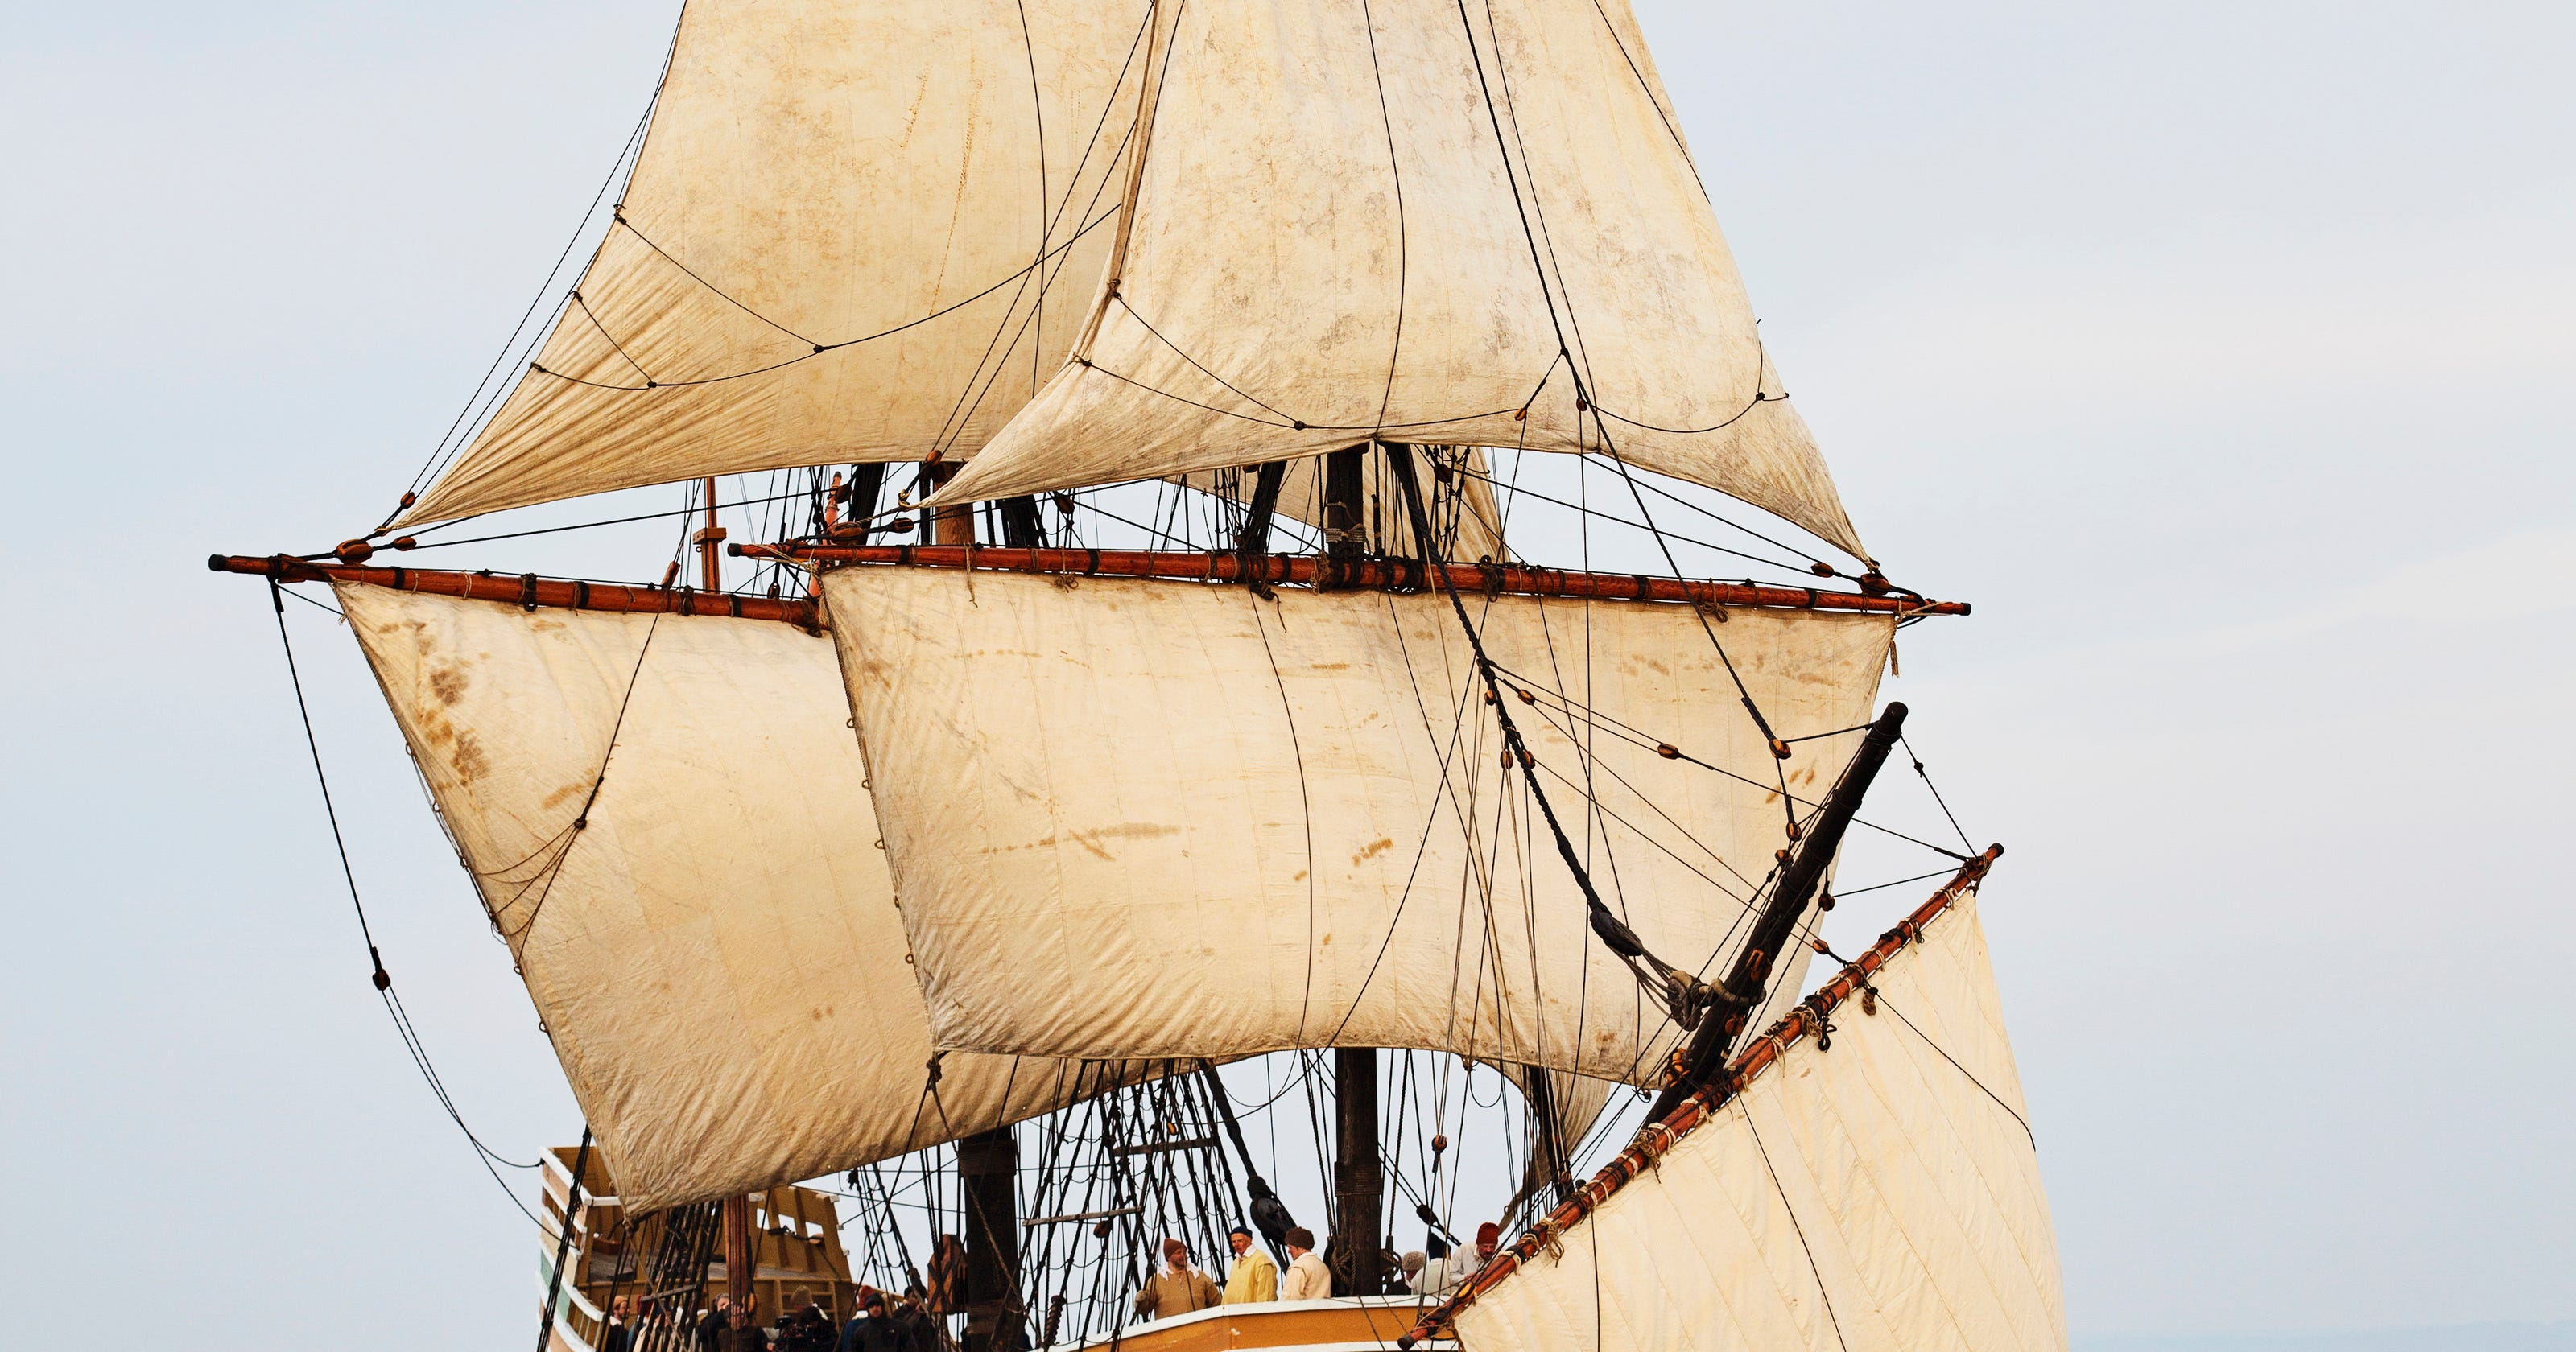 Was one of your ancestors on the Mayflower? You can find out now